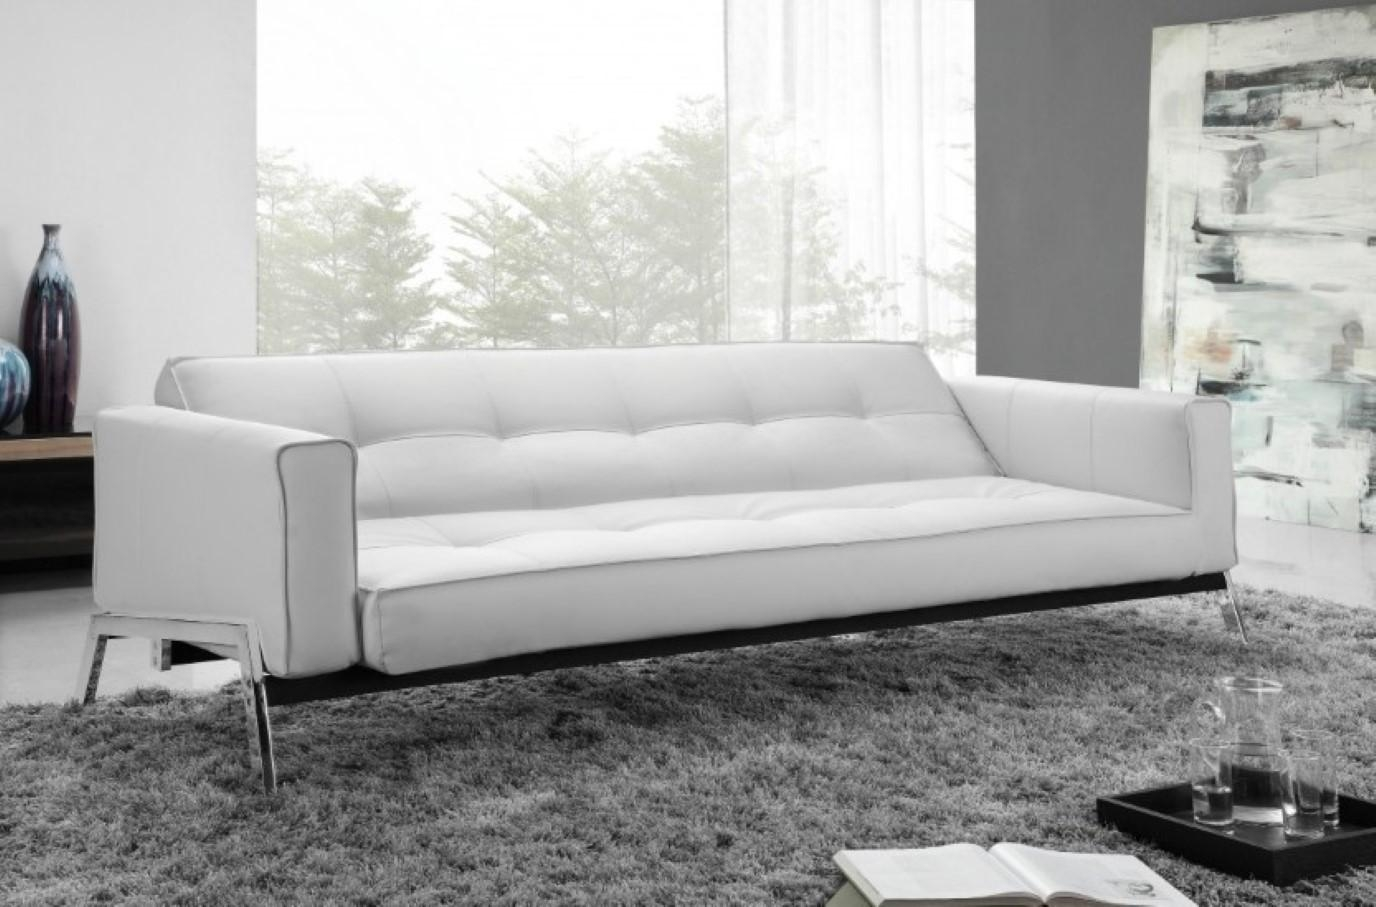 Amusing White Modern Sofa Studio Leather Whitebw595Bh595 Sofa Throughout White Modern Sofas (Image 1 of 20)